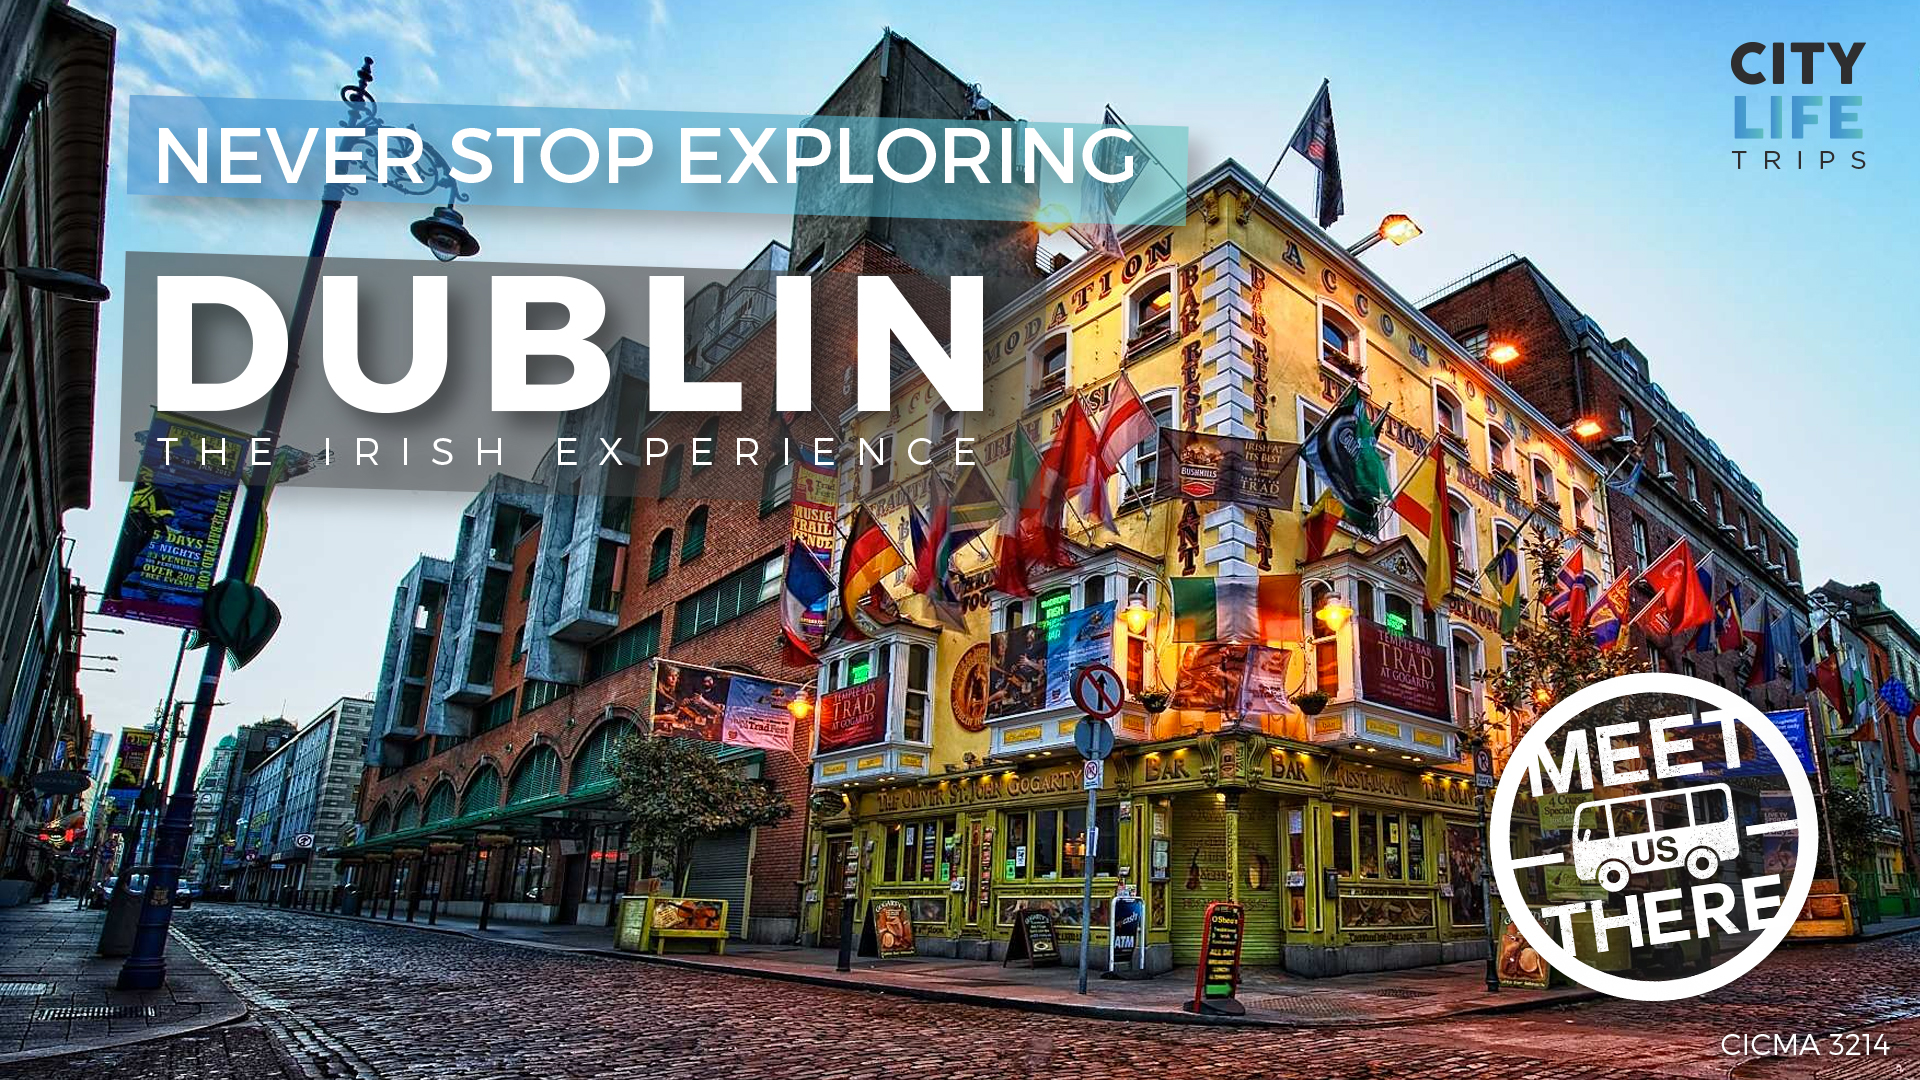 Dublin - The Irish Experience (Meet us There)